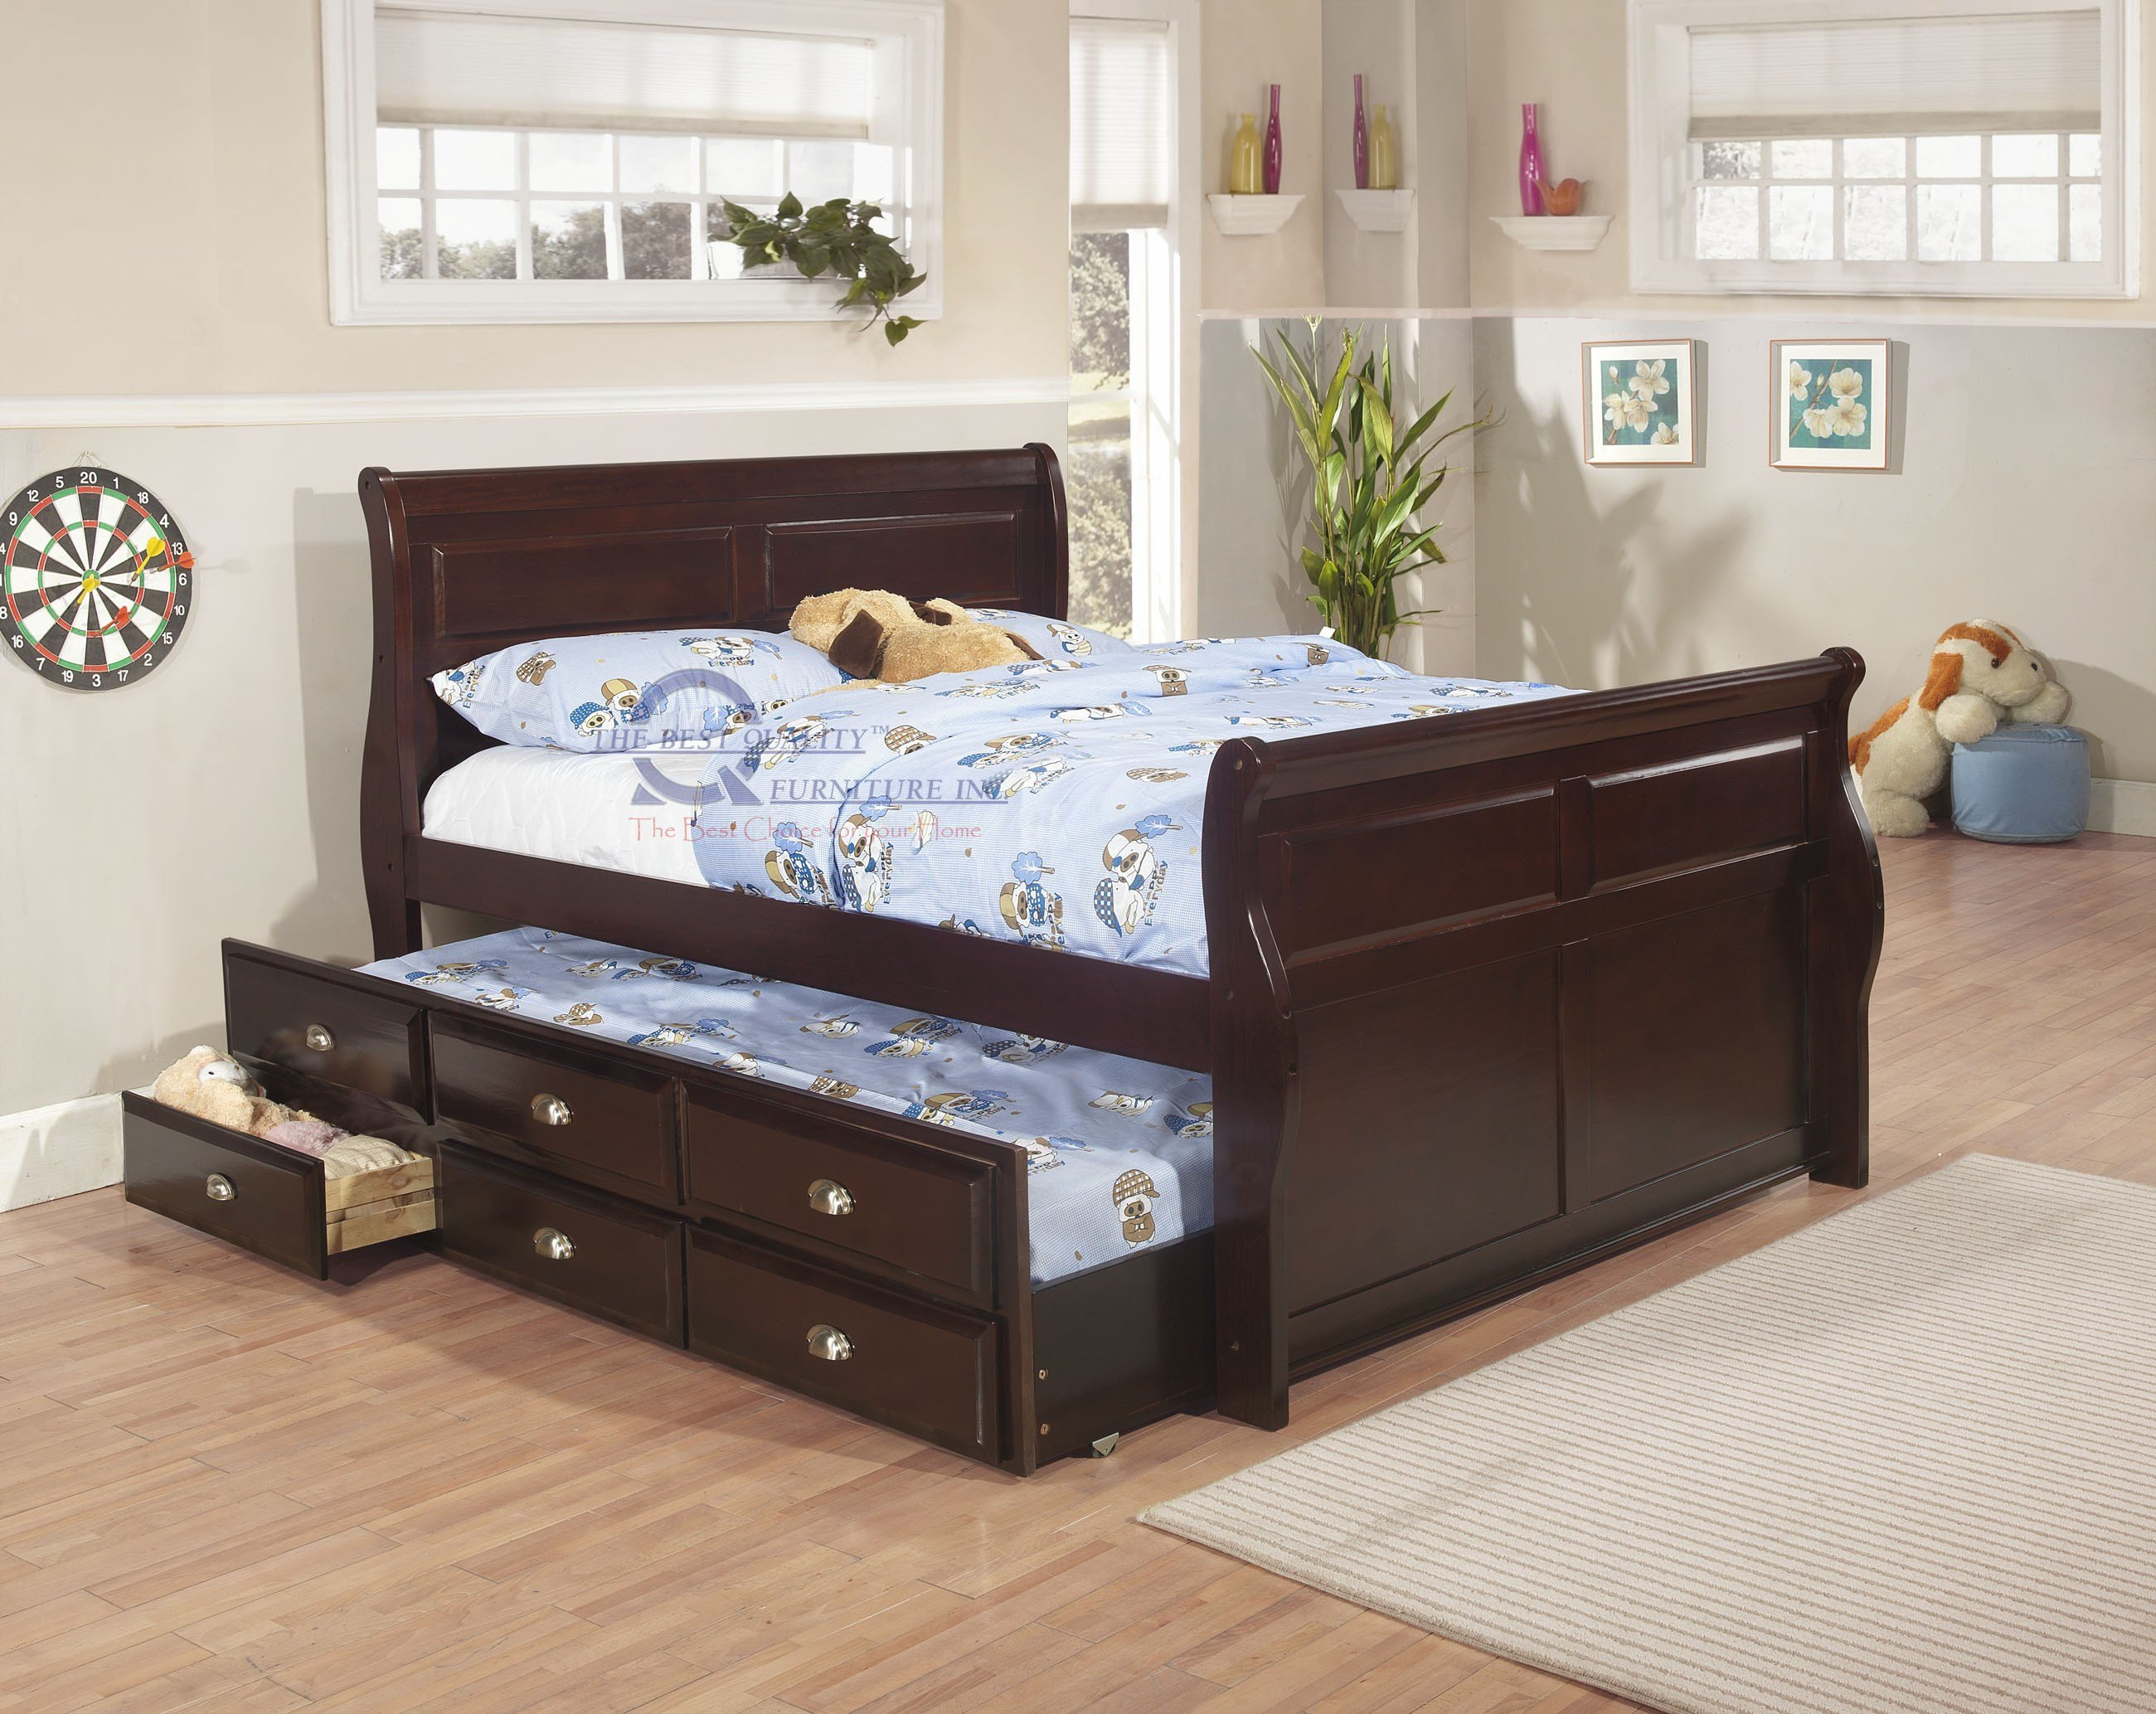 Best Twin Beds Furniture Bed With Drawers Underneath Toddler With Pictures